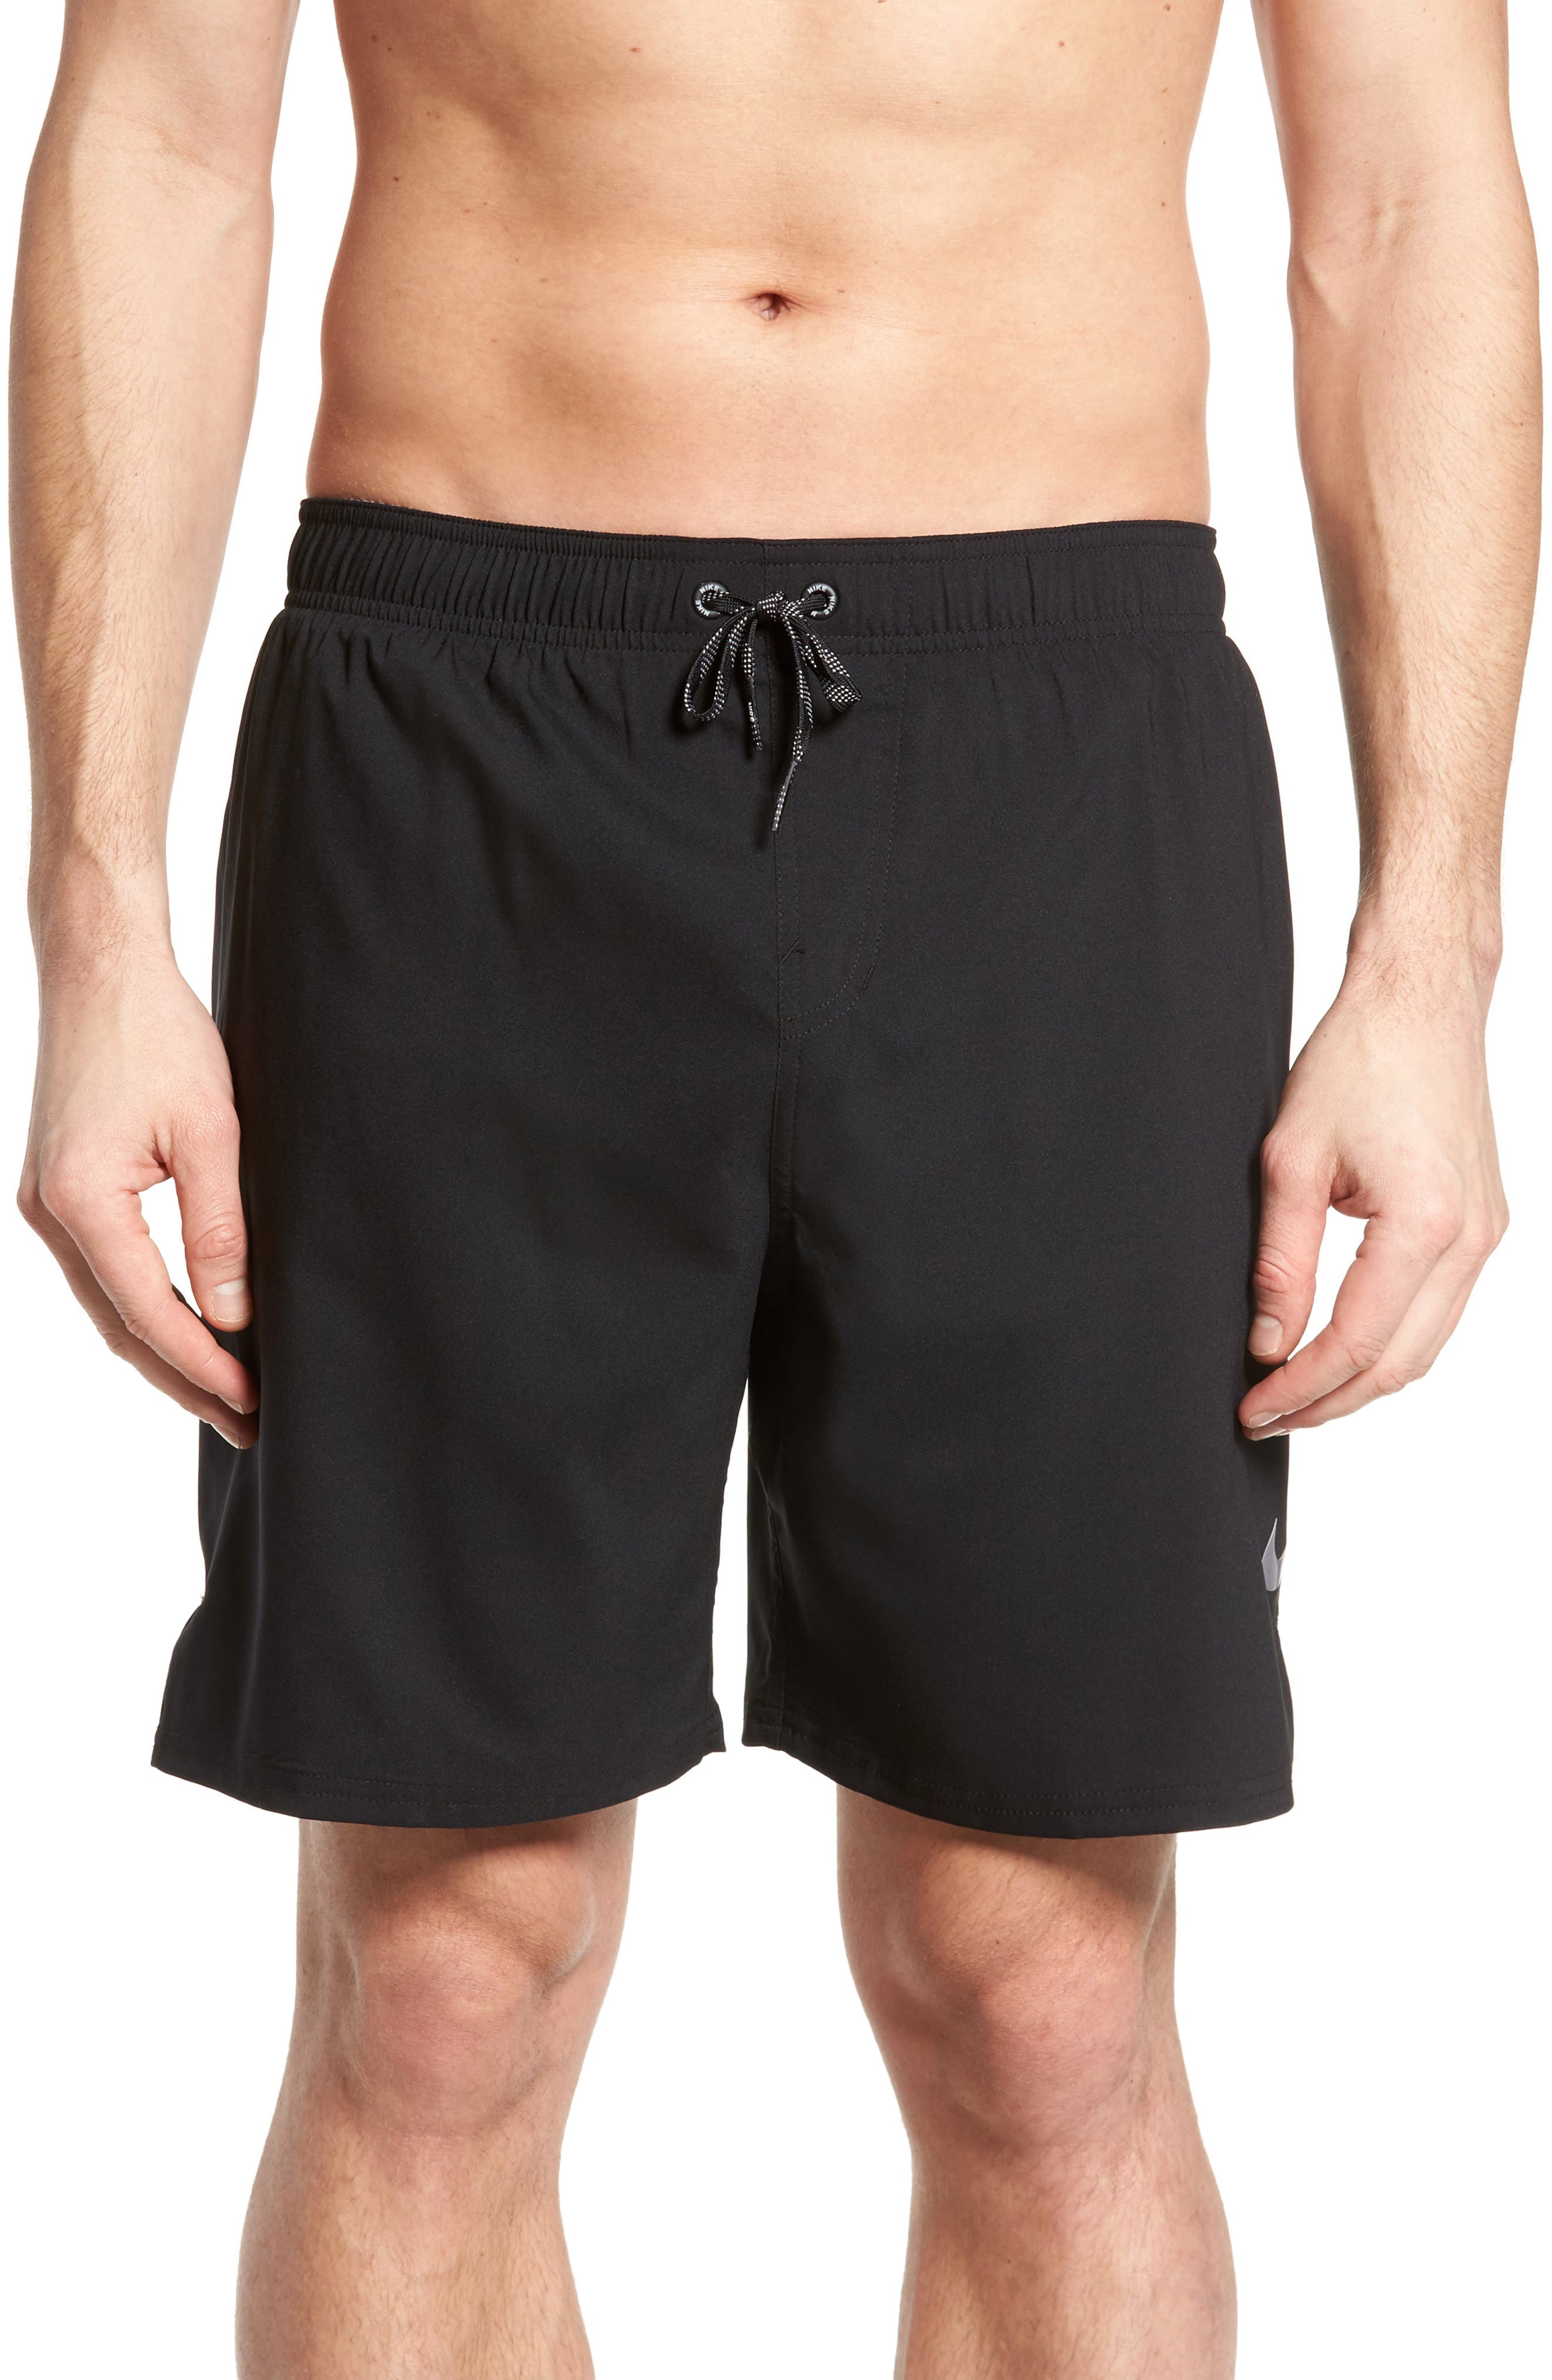 Vital Swim Trunks,                         Main,                         color, 001